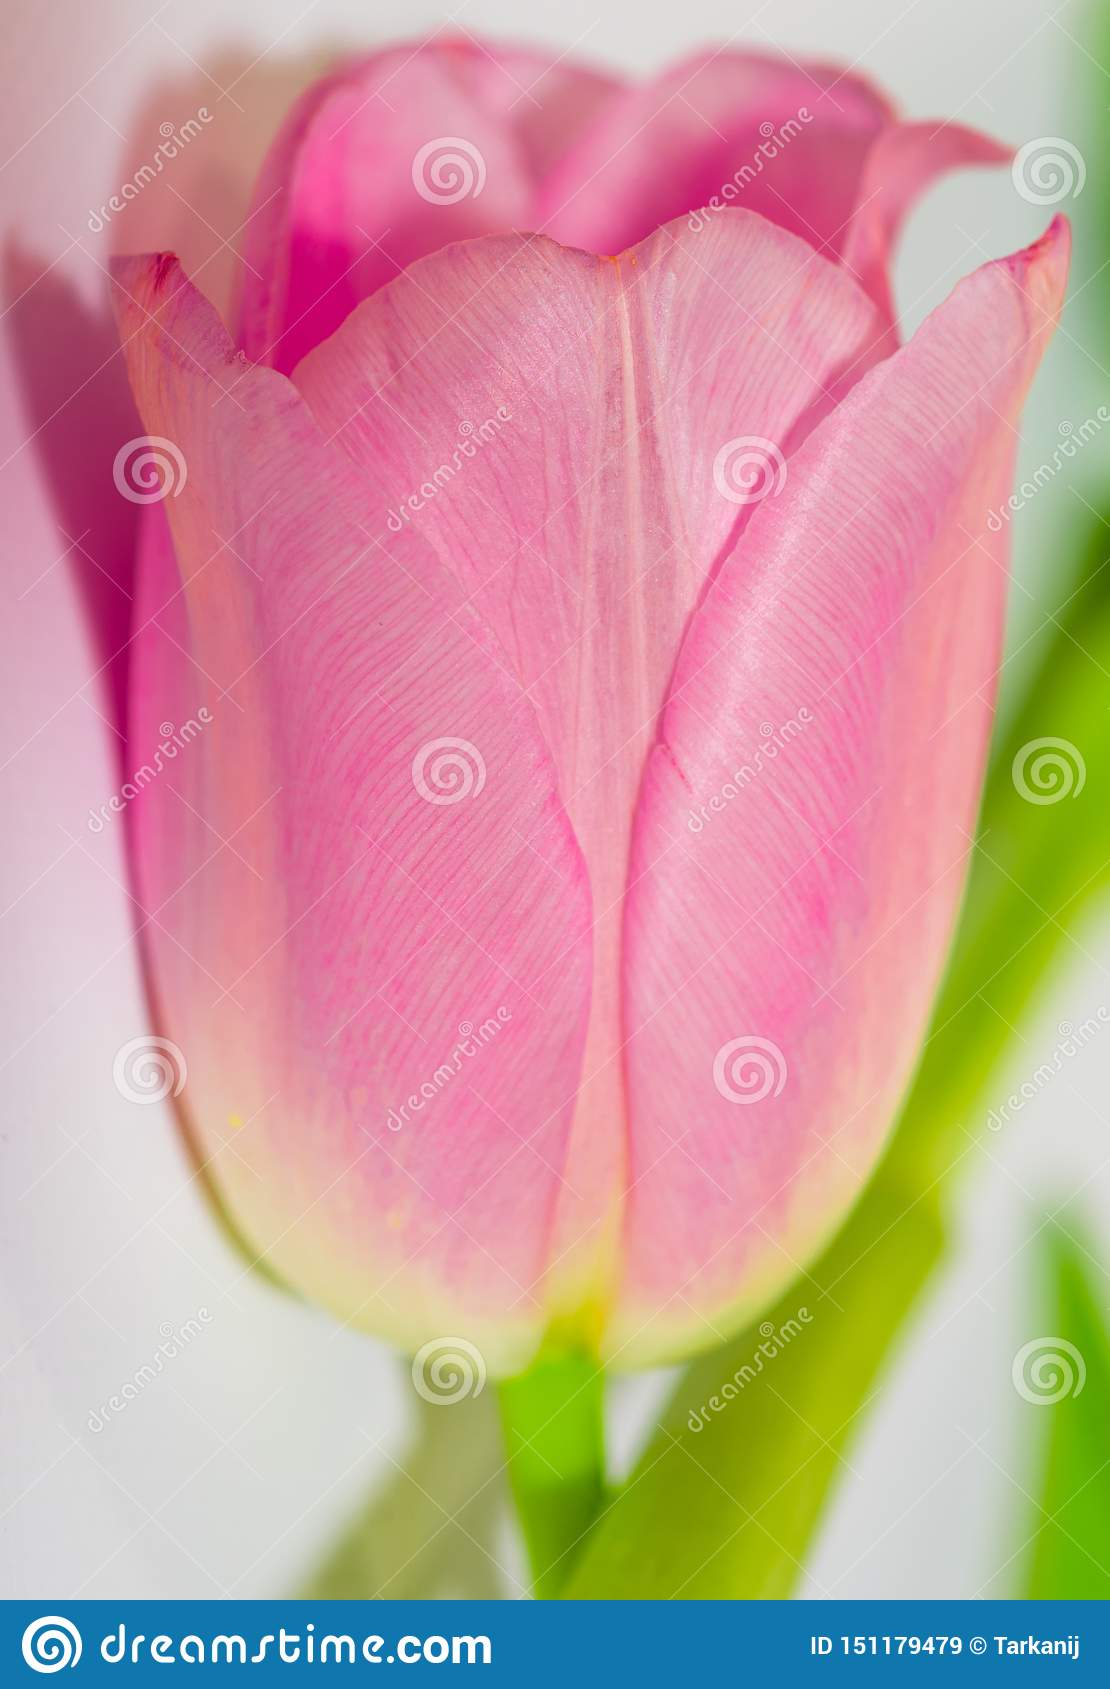 Pink tulip. Close-up pink tulip isolated on white. Spring flowers. Tulips on pastel colors background. Greeting card